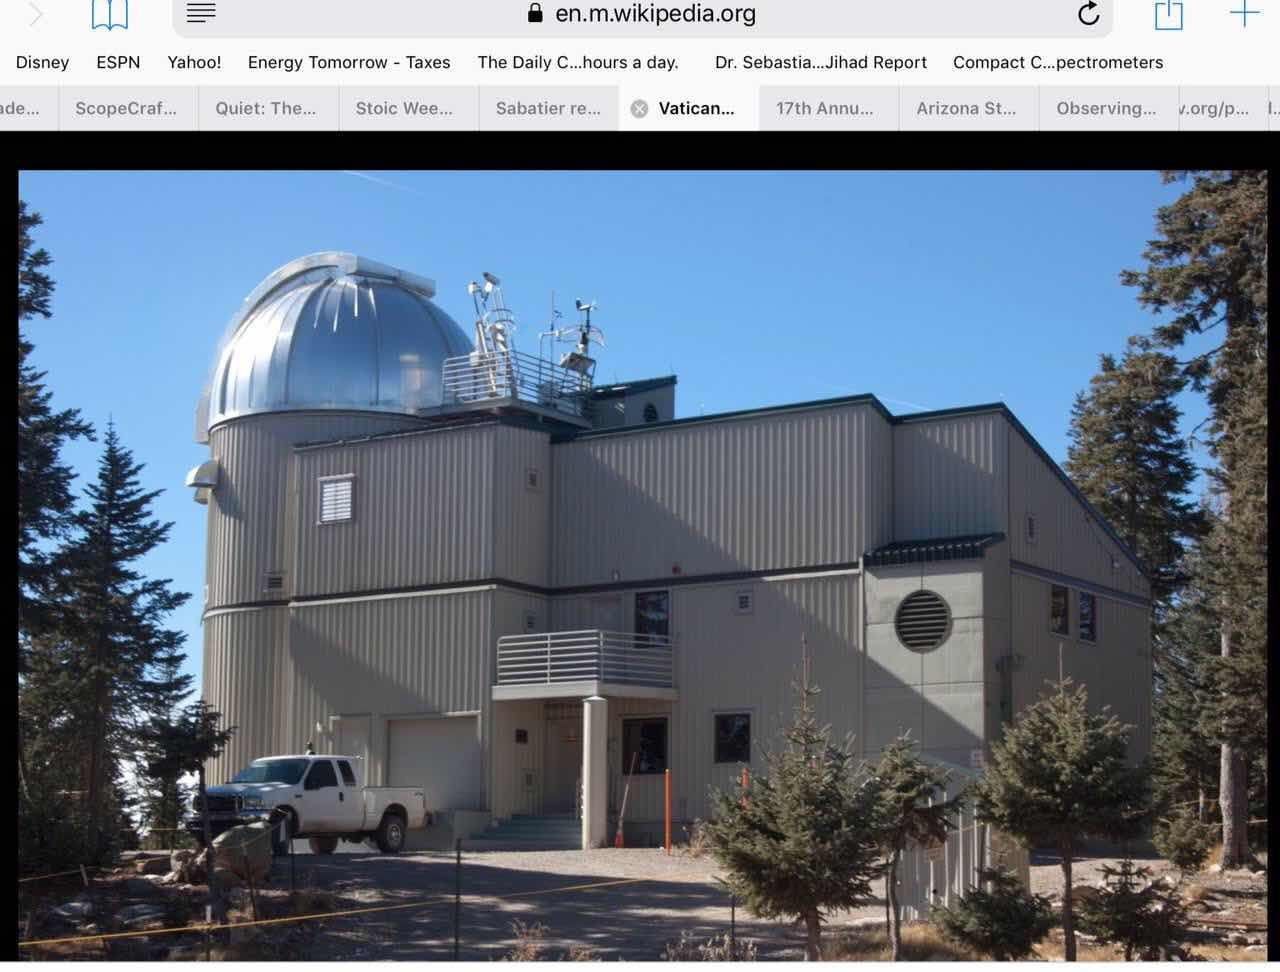 Vatican Advanced Technology Observatory on Mt Graham (Source: Wikipedia)